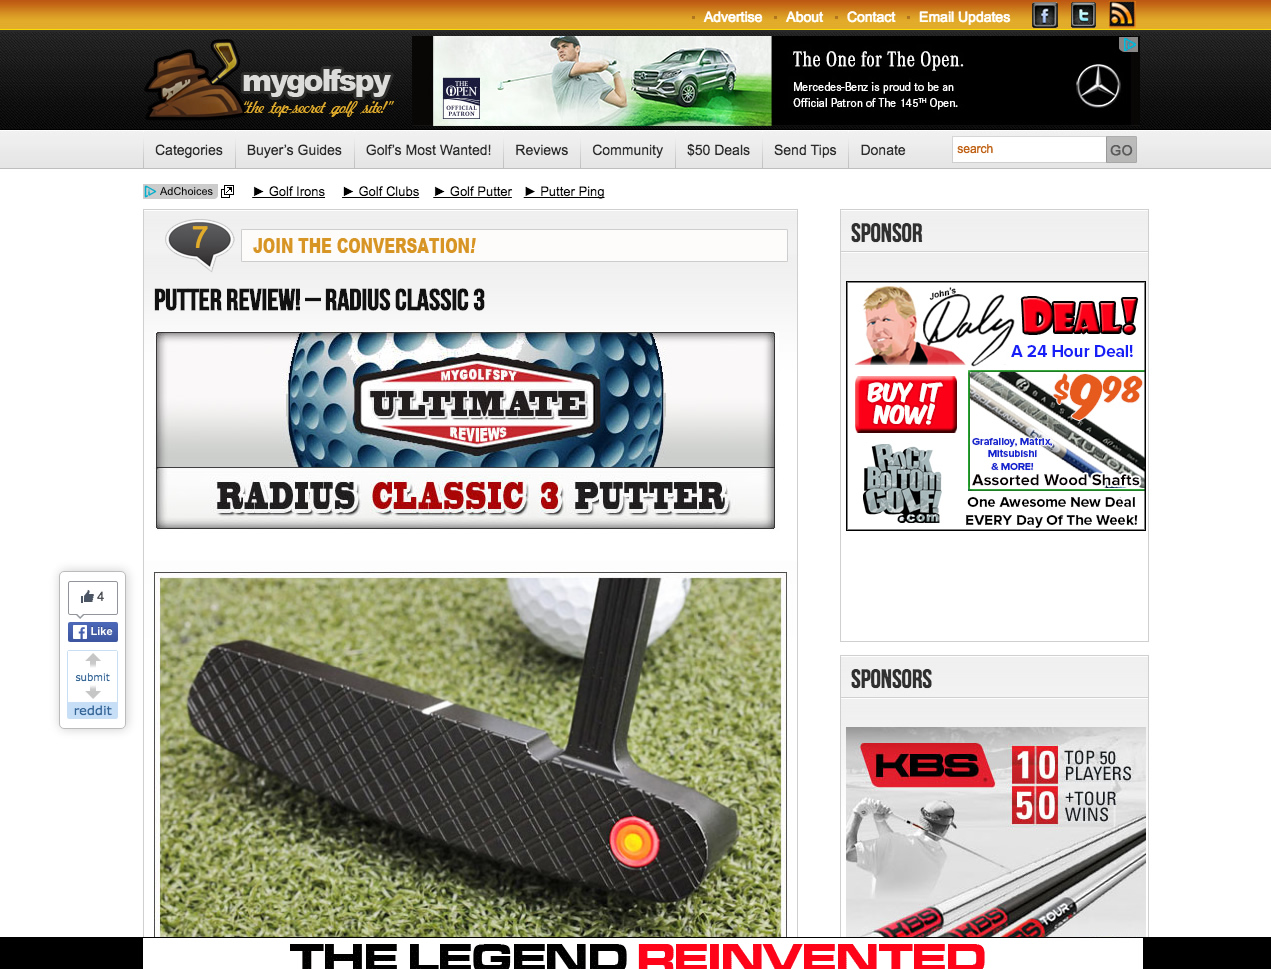 My Golf Spy Review